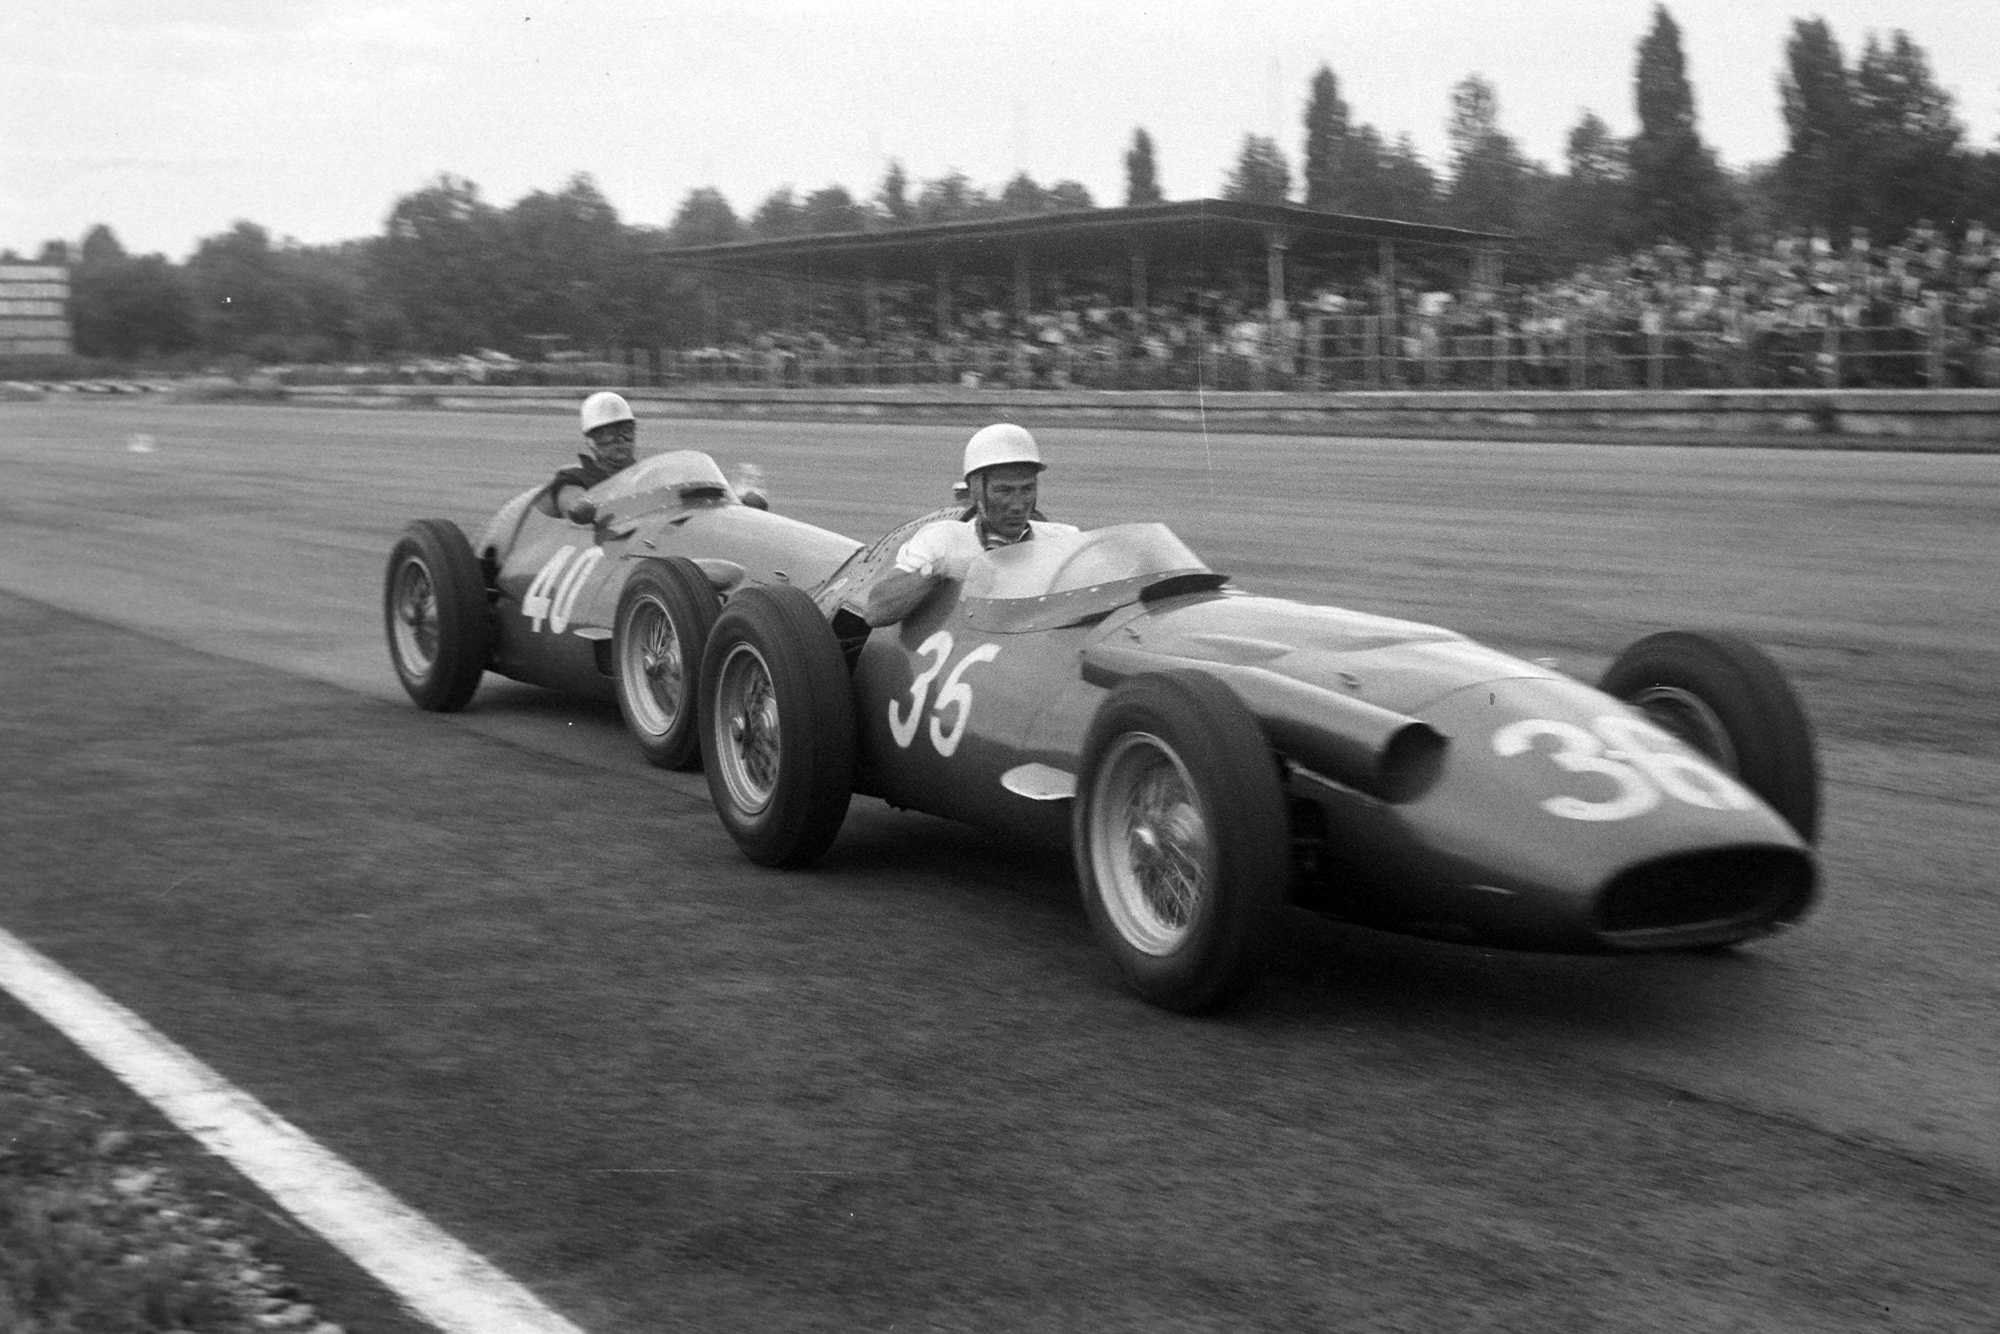 Stirling Moss whose Maserati 250F has run out of fuel, recieves a push back to the pits from team-mate Luigi Piotti, 1956 Italian Grand Prix, Monza.